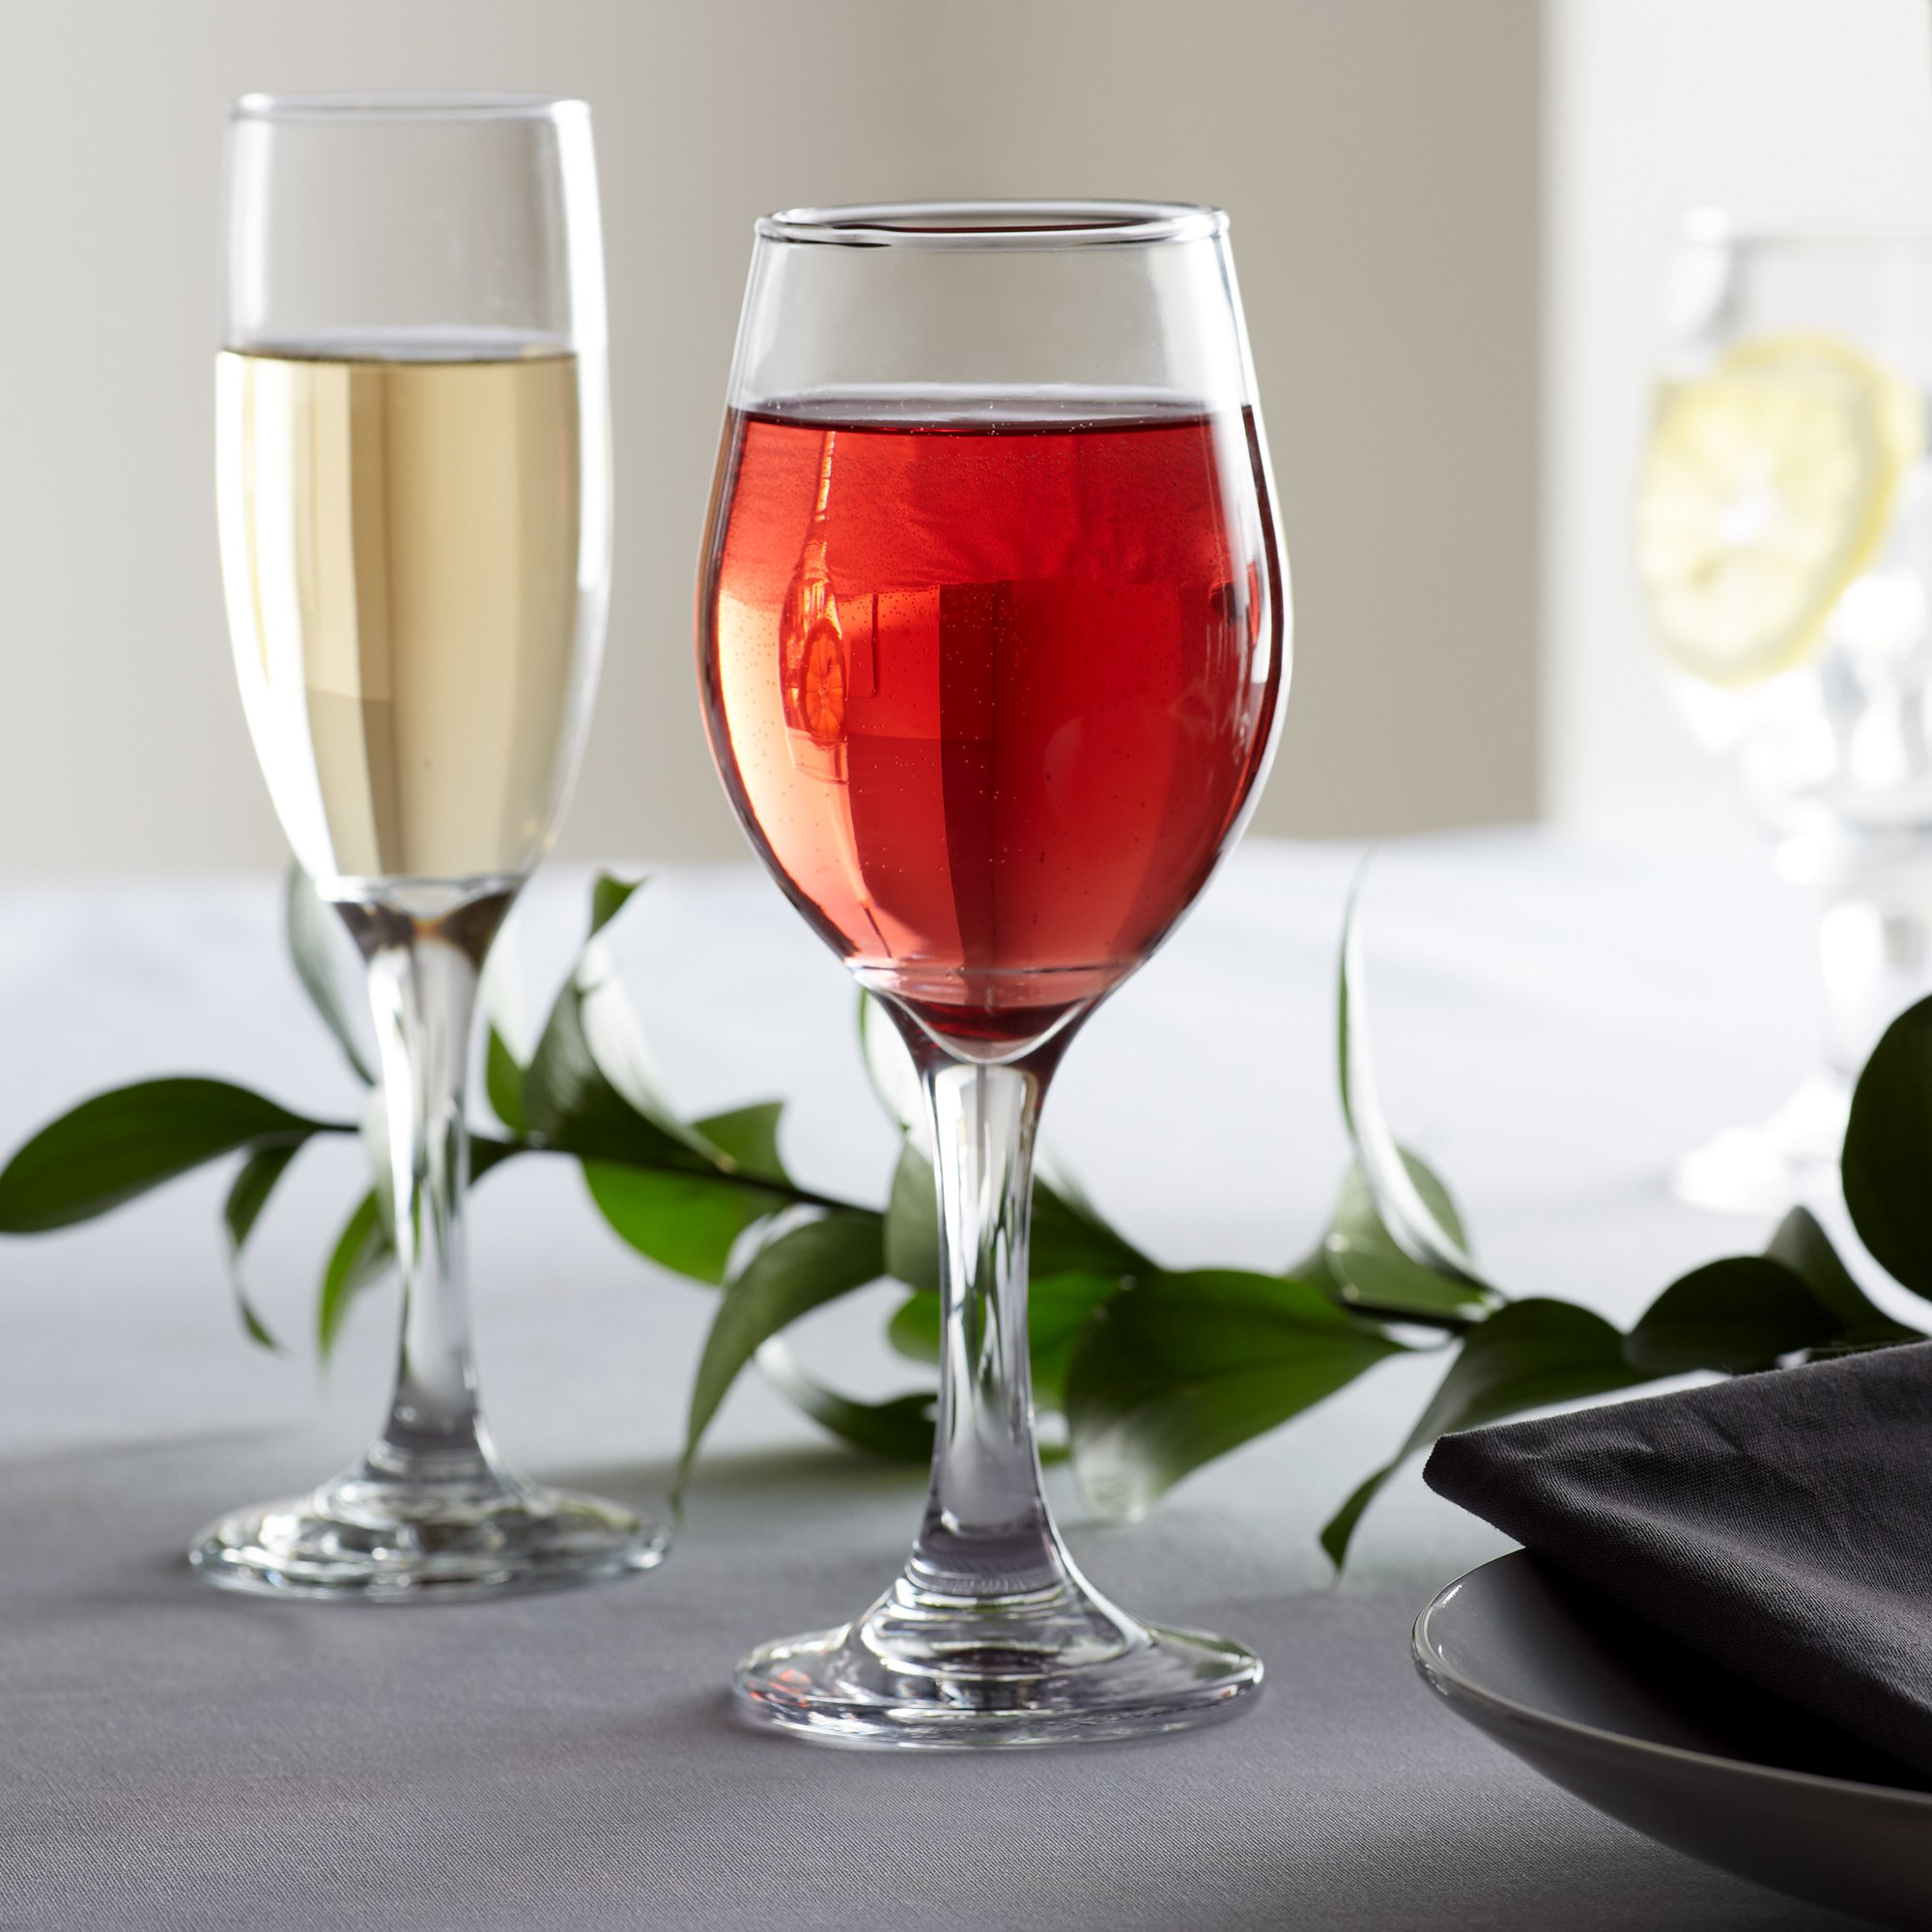 Two stemmed wine glasses filled with wine on an elegant table